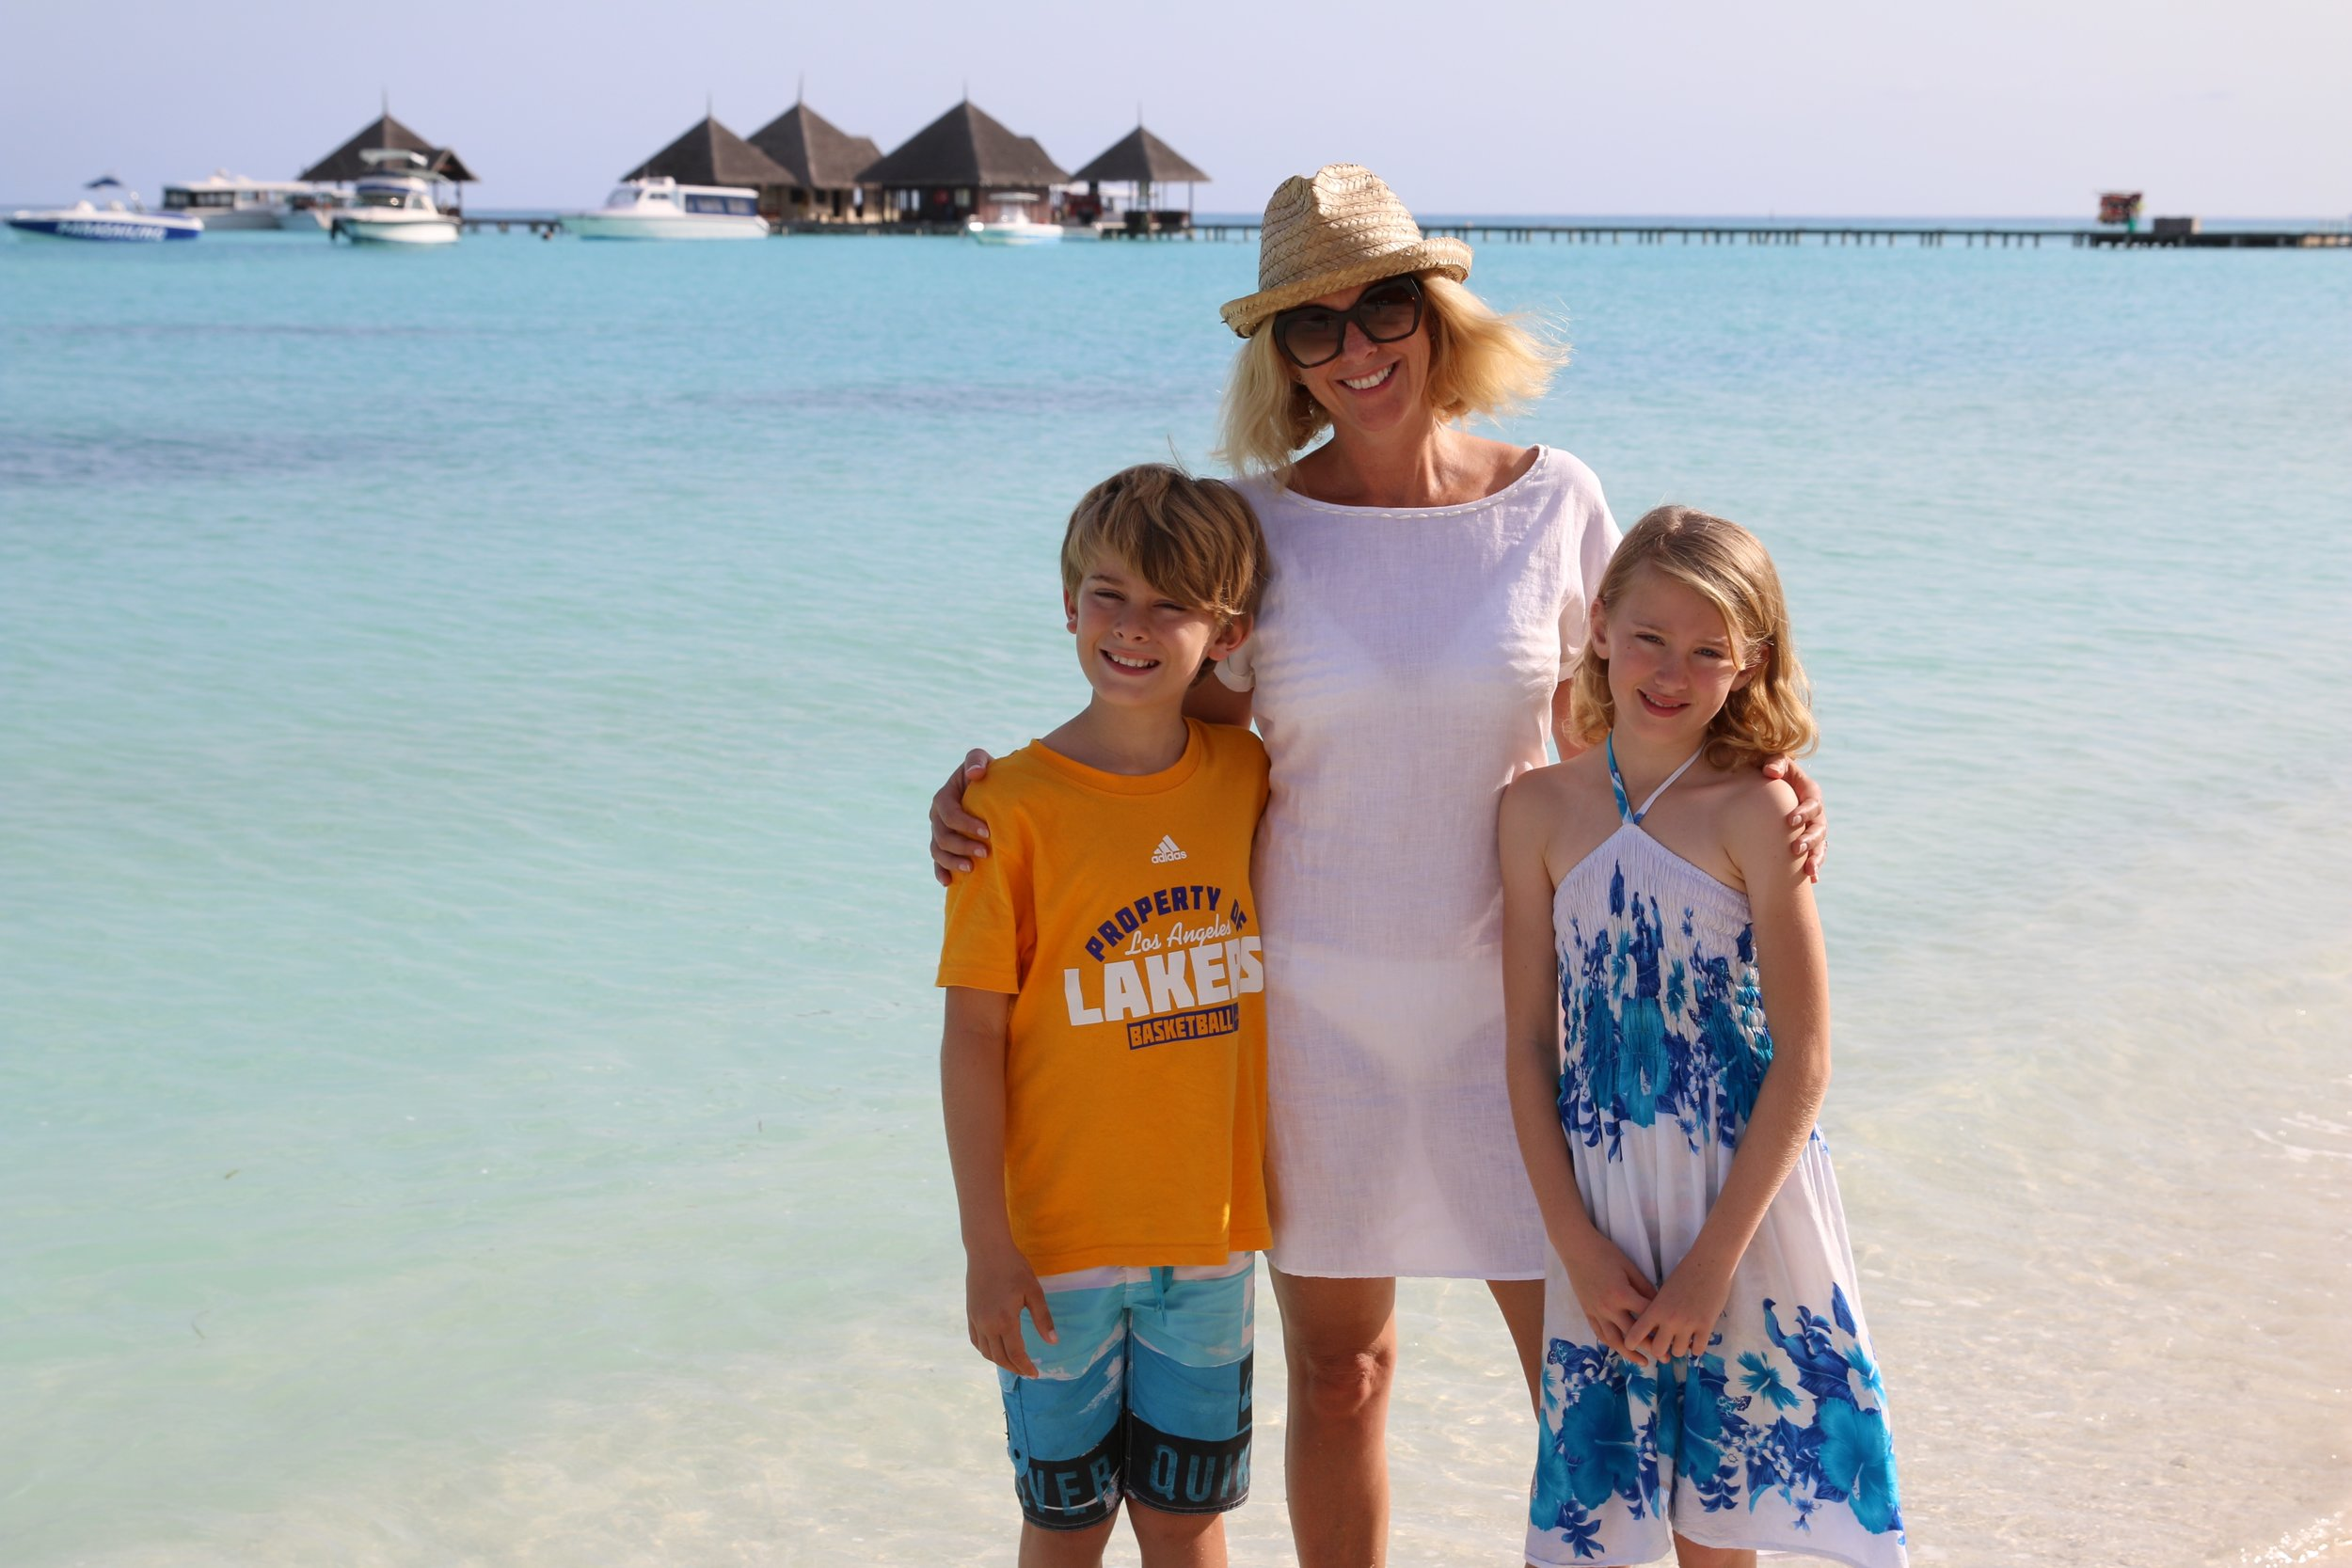 Tracey Spicer in Club Med Kani